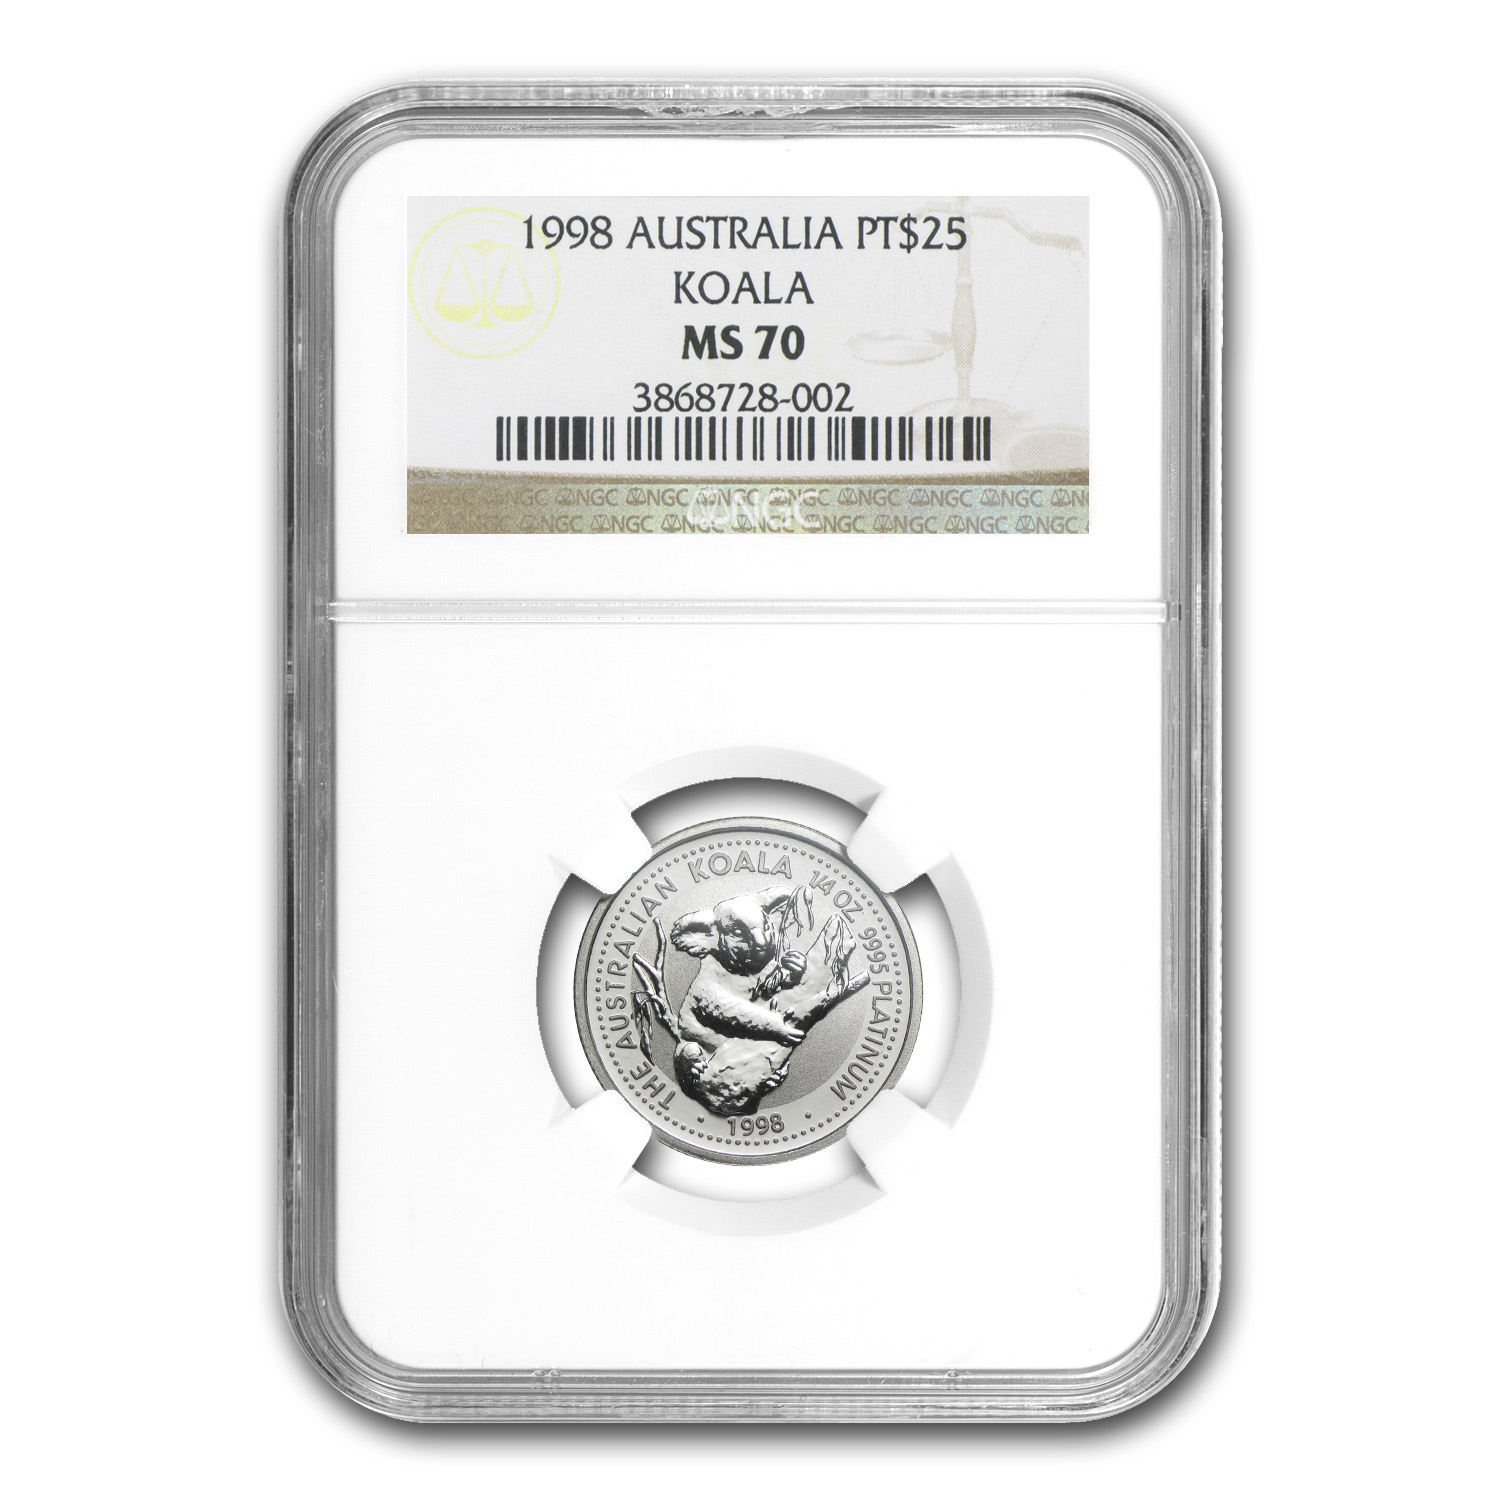 1998 1/4 oz Australian Platinum Koala MS-70 NGC (Registry Set)